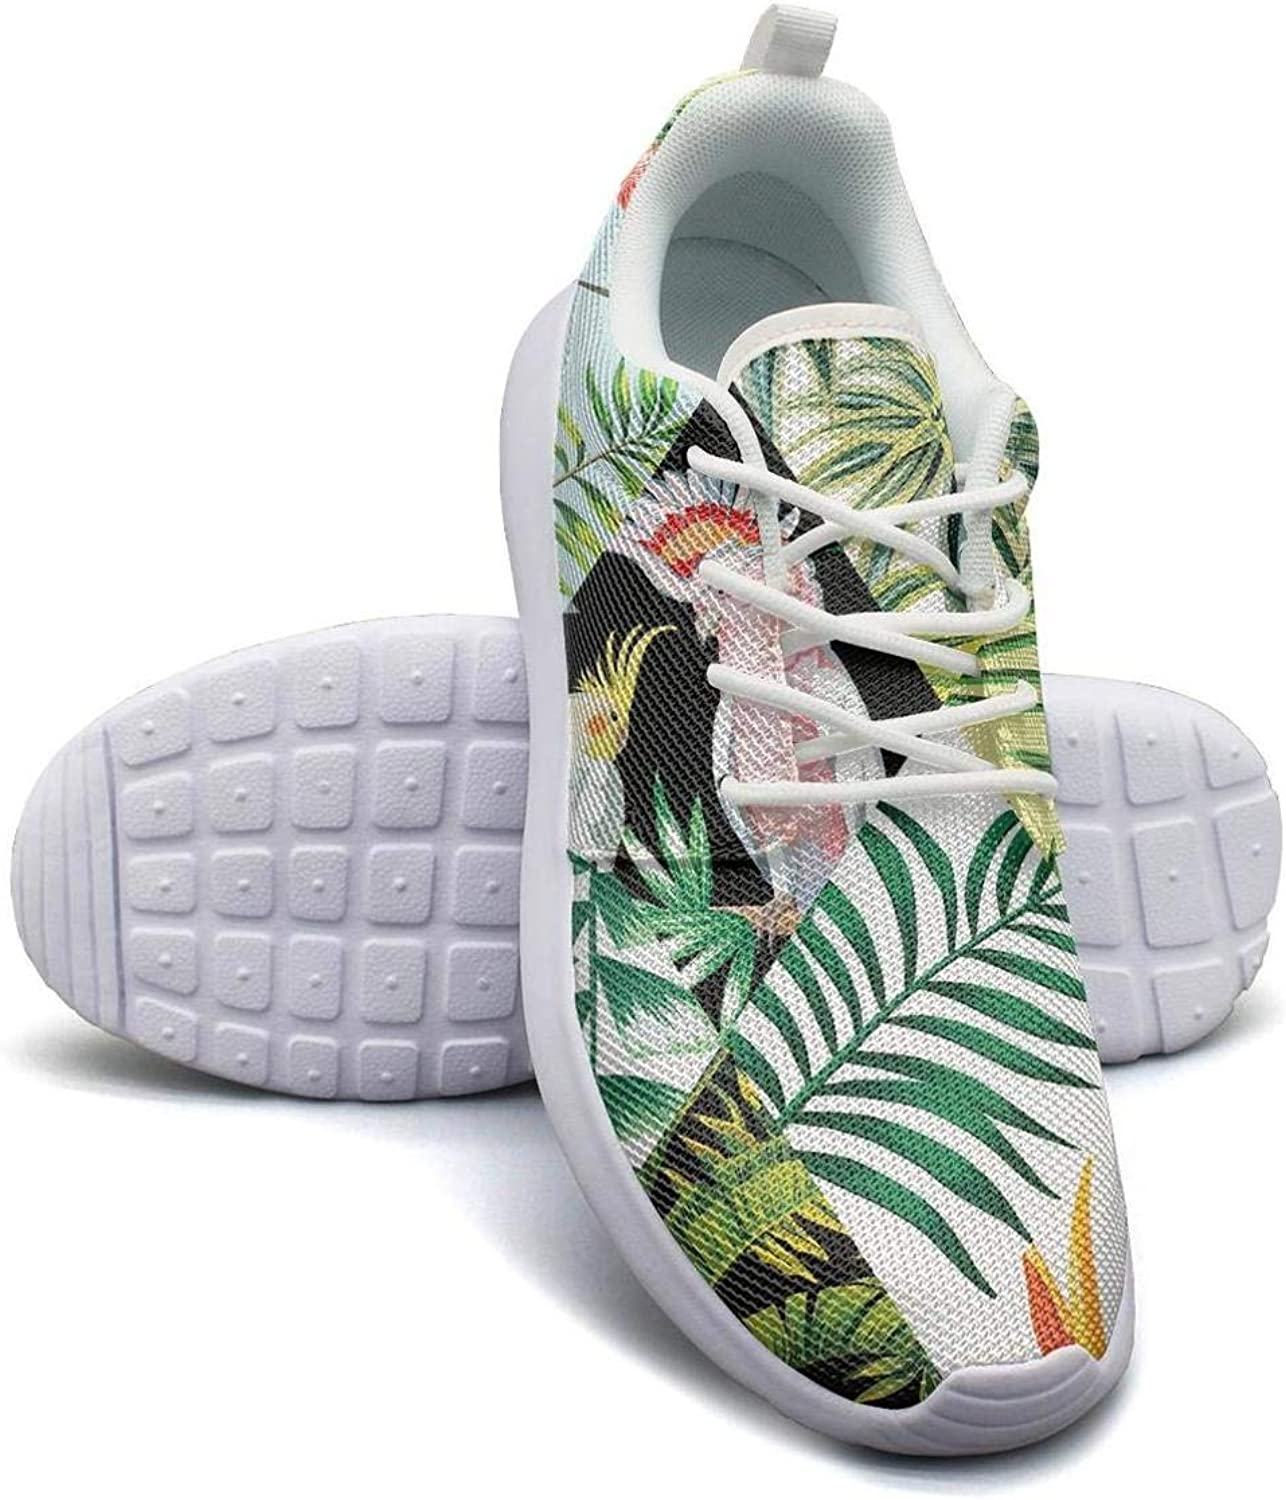 CHALi99 Comfort Women Lightweight Mesh shoes Tropical Floral Hawaiian Exotic Sneakers Sport Lace-Up